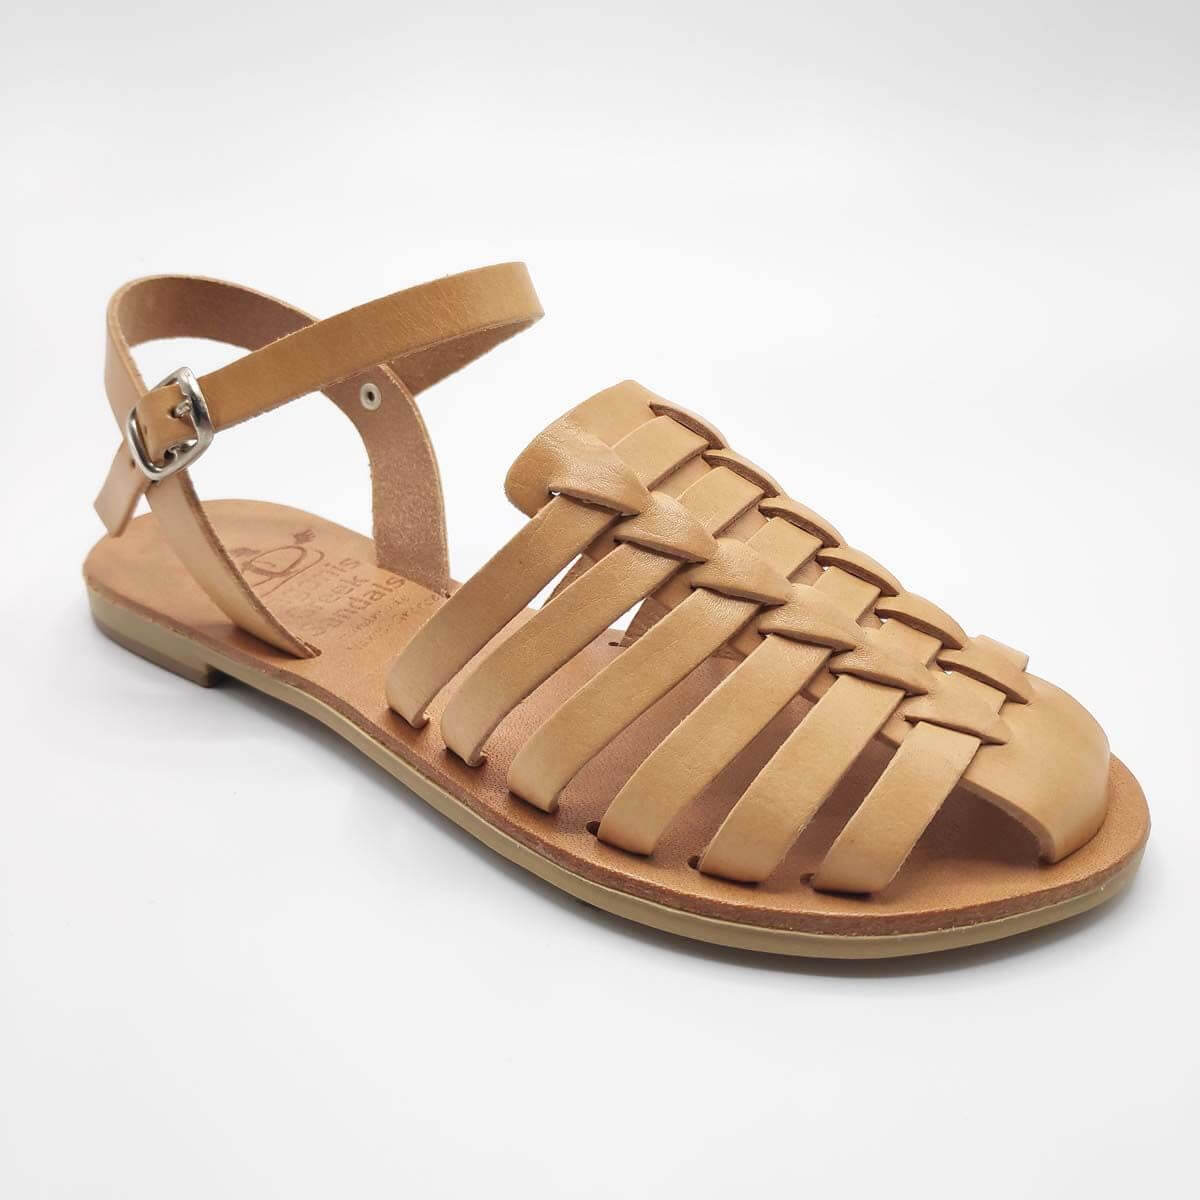 Women and Kids by Pagonis Greek Sandals